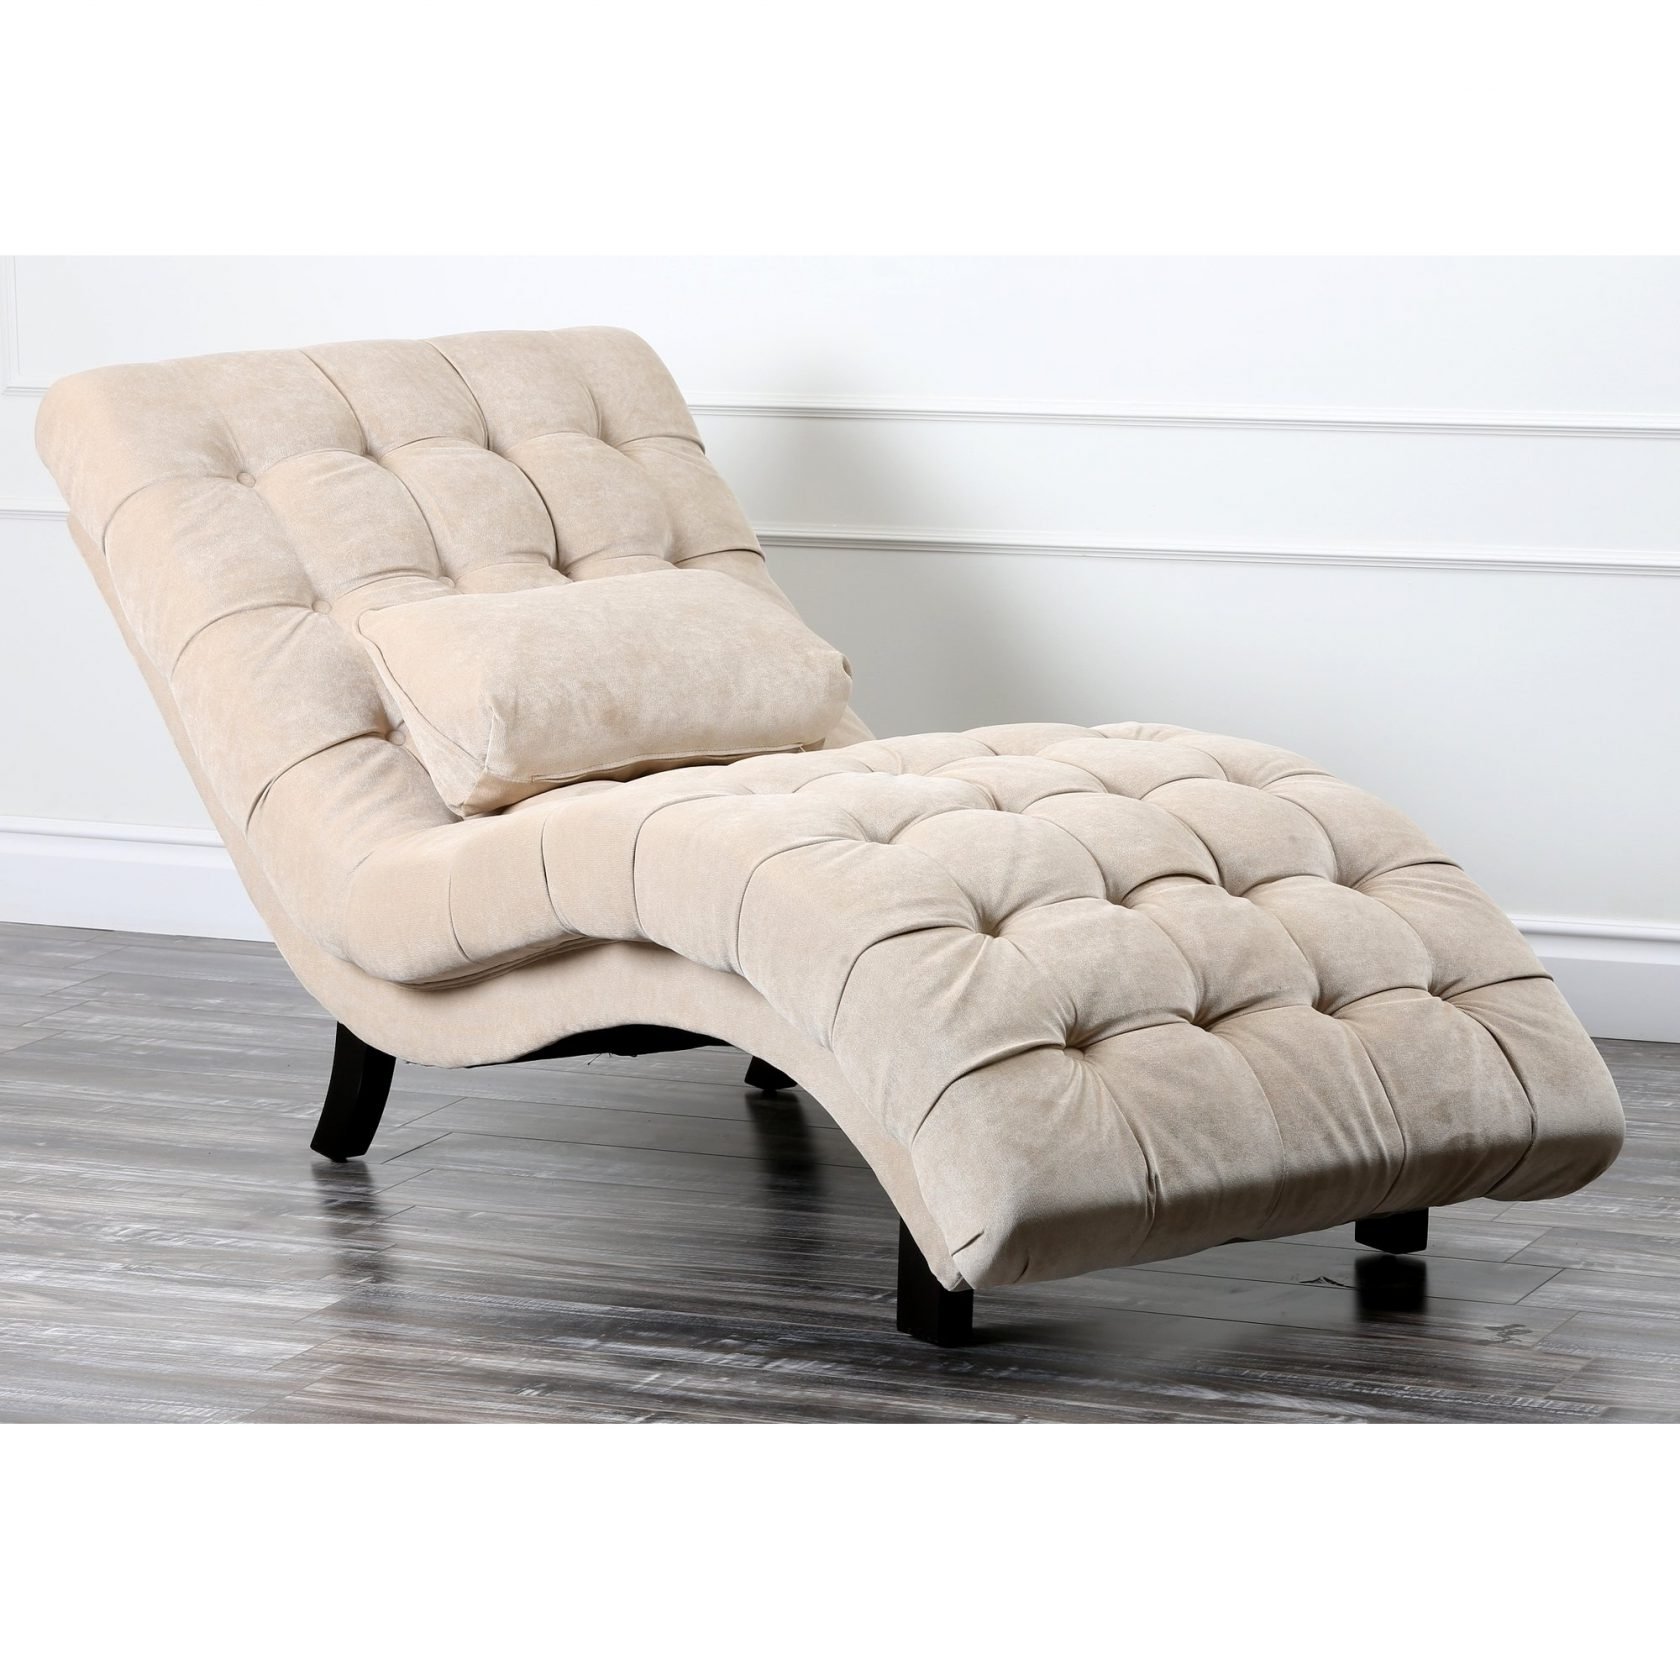 Well Known Fascinating Bedroom Chaise Lounge Chairs Fantastic Photos Picture In Futon Chaise Lounges (View 12 of 15)